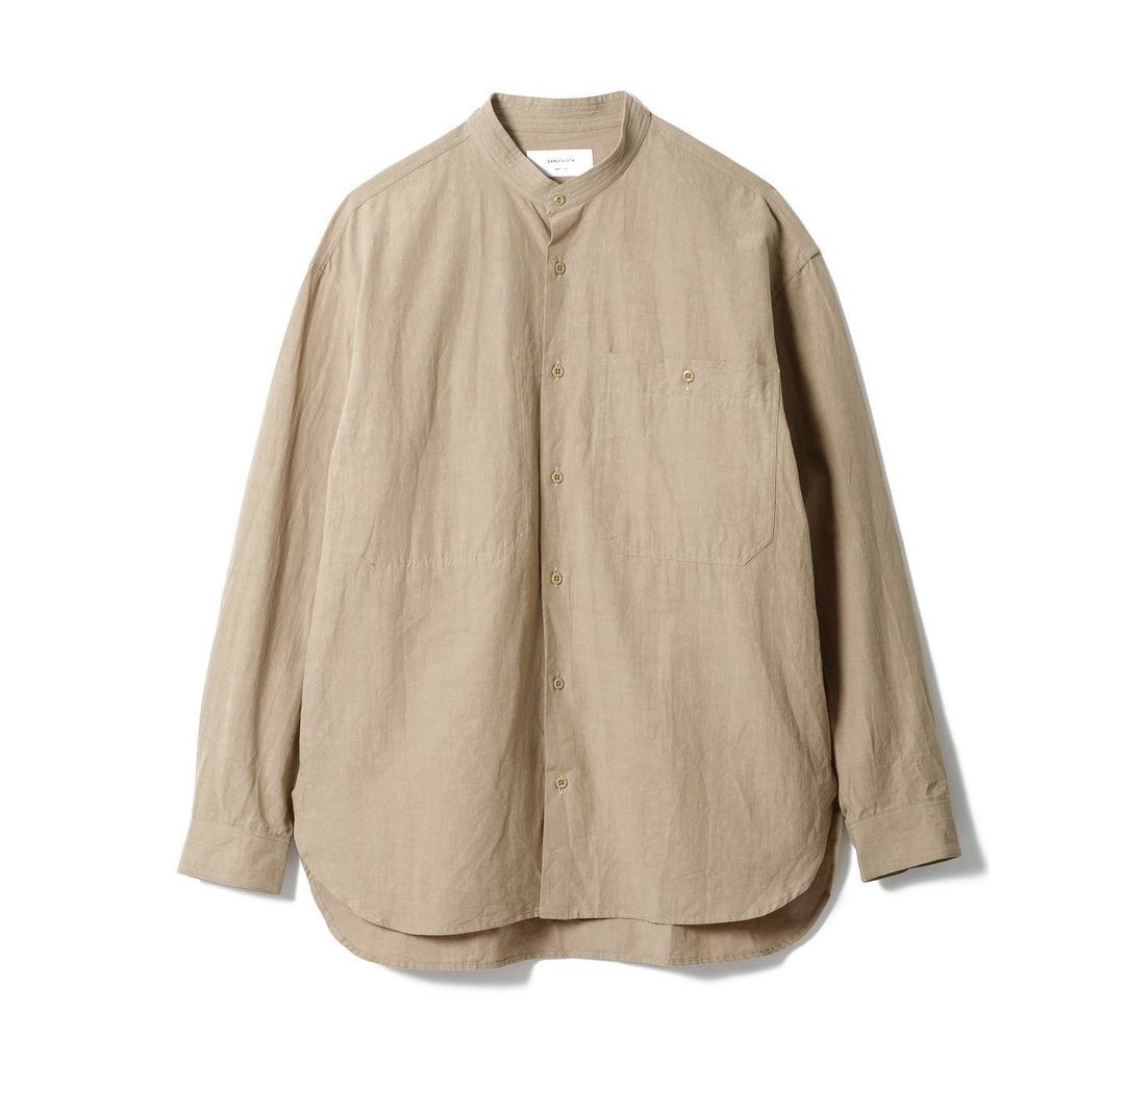 "SANDINISTA""Band Collar Cotton Linen Military Shirt\""_d0101000_16003115.jpeg"